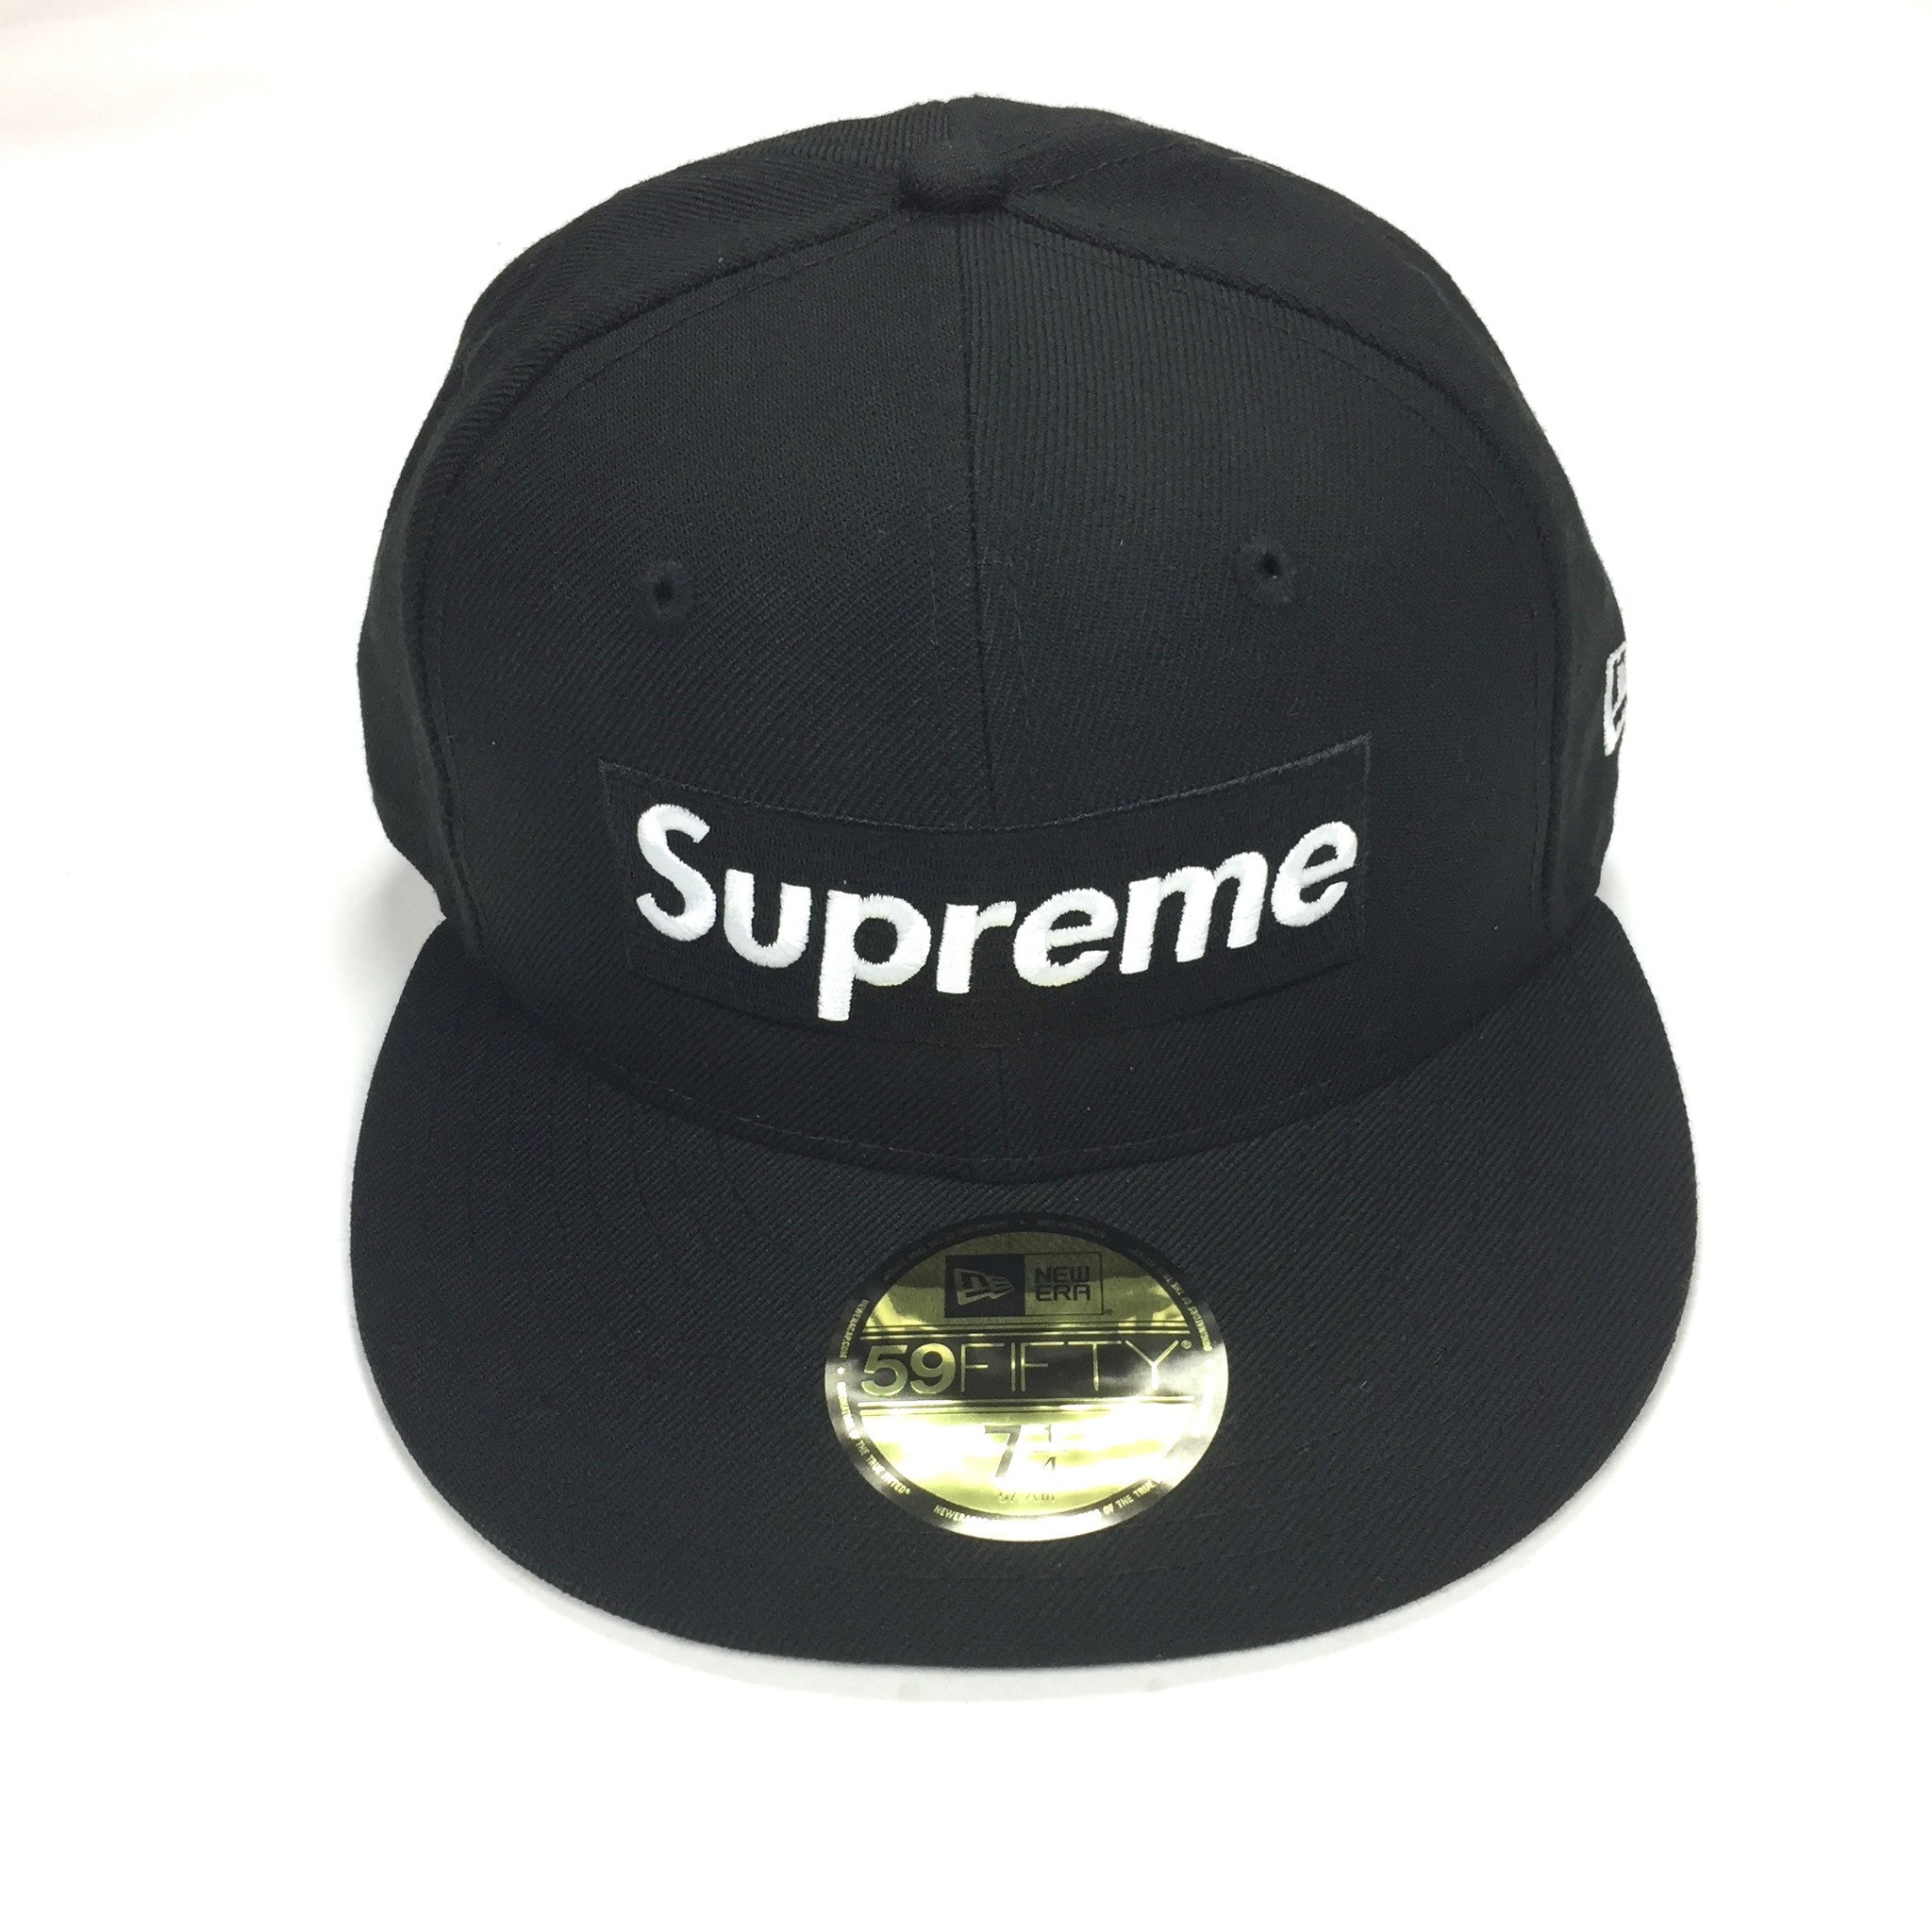 40bbad8d5f5 Supreme x New Era - SS17 Red Box Logo Piping Fitted 59FIFTY Hat ...